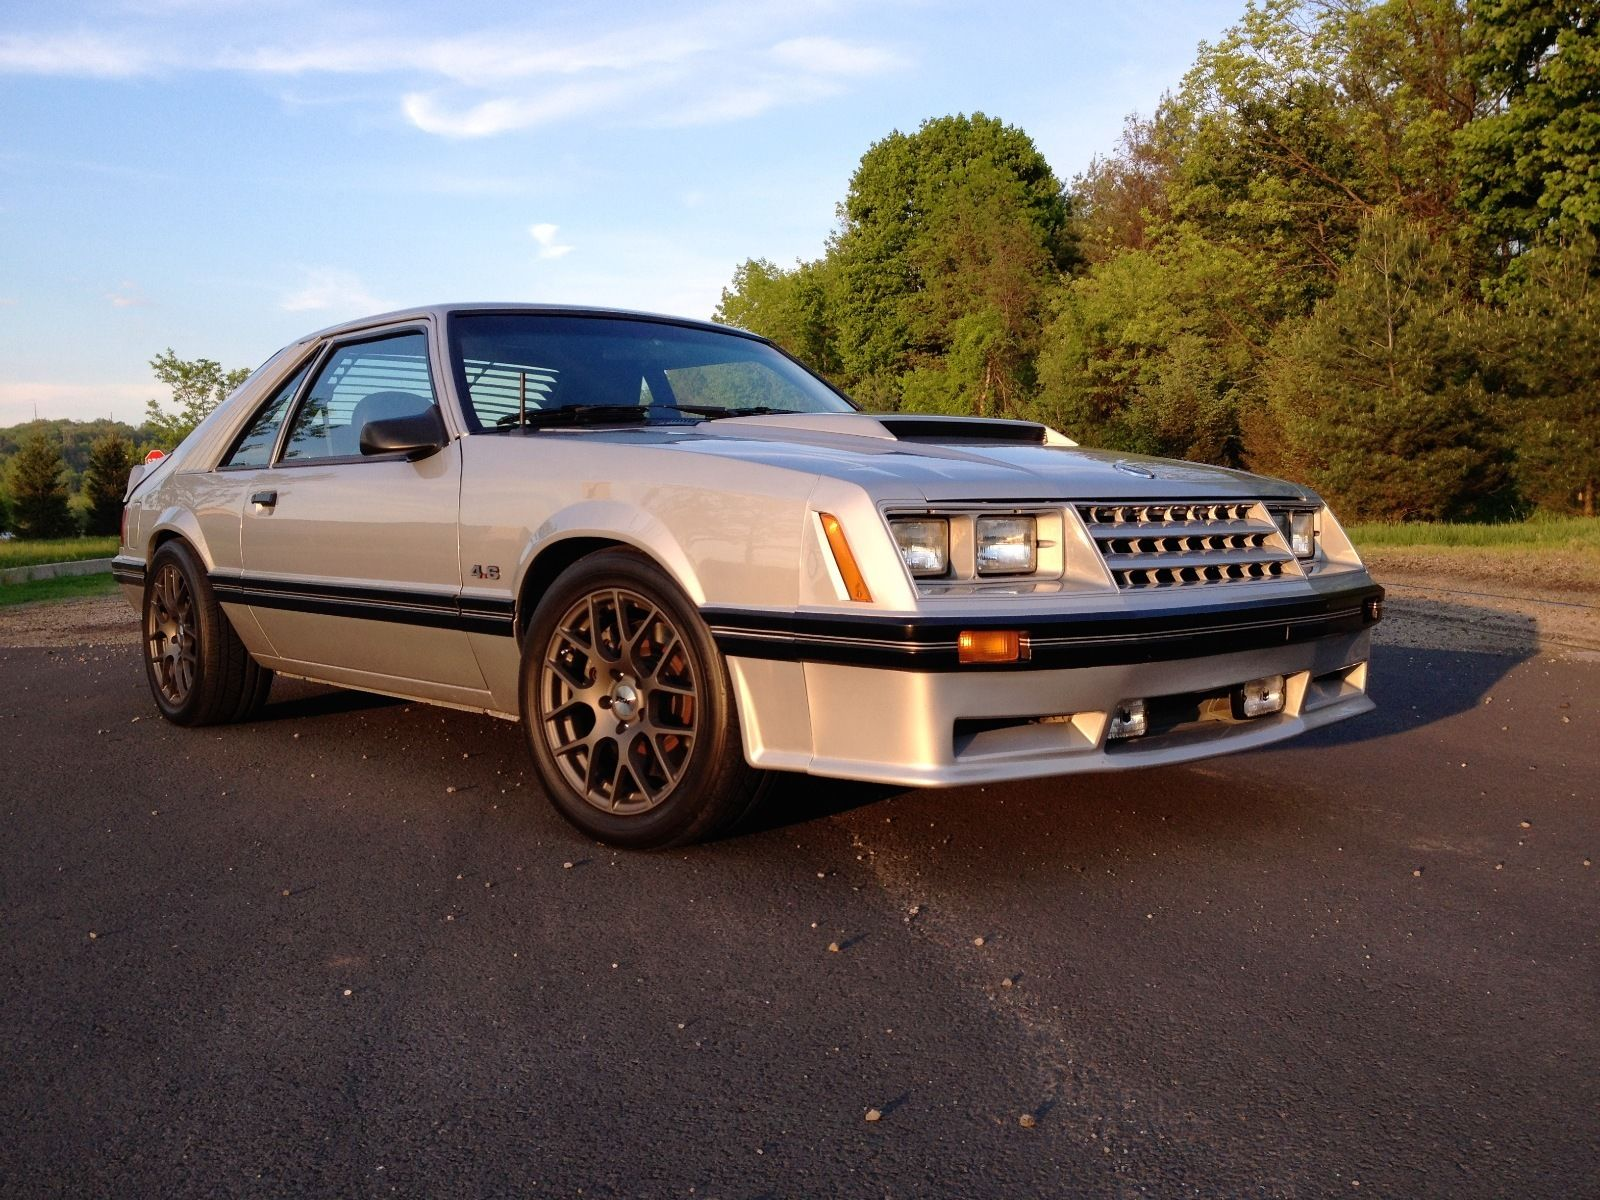 hight resolution of this 1982 ford mustang is for sale on ebay esd may earn commisions when a product is purchased from this link in hellertown pennsylvania